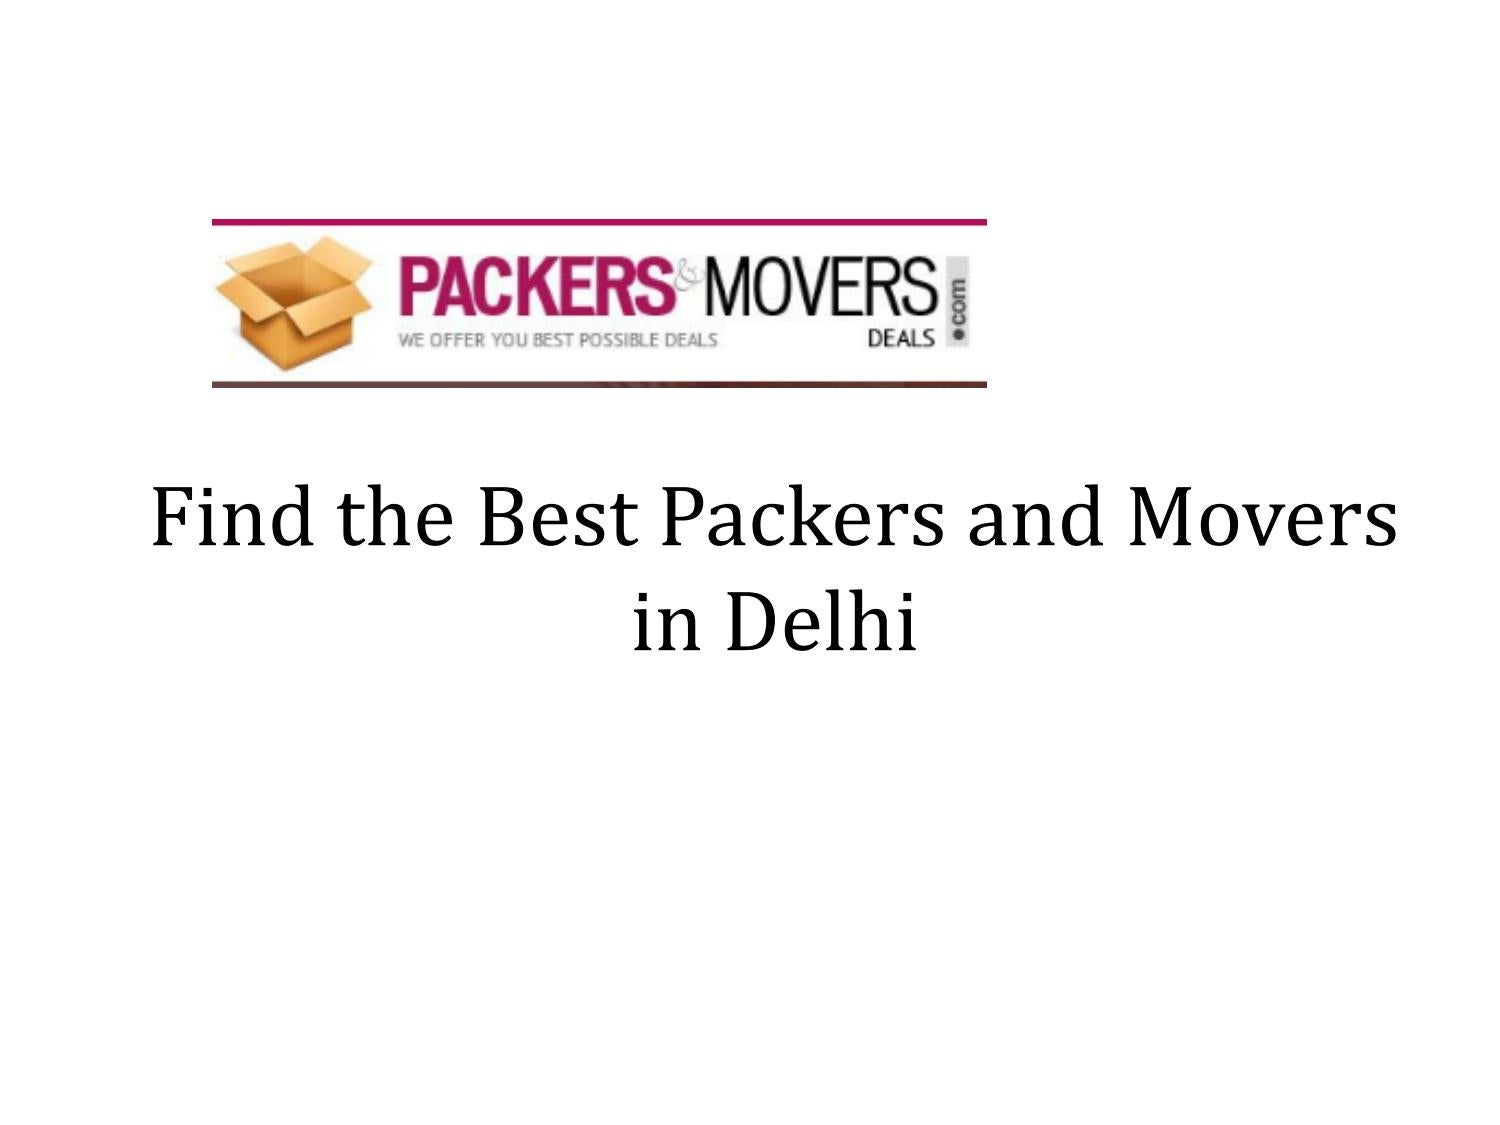 Find the Best Packers and Movers in Delhi